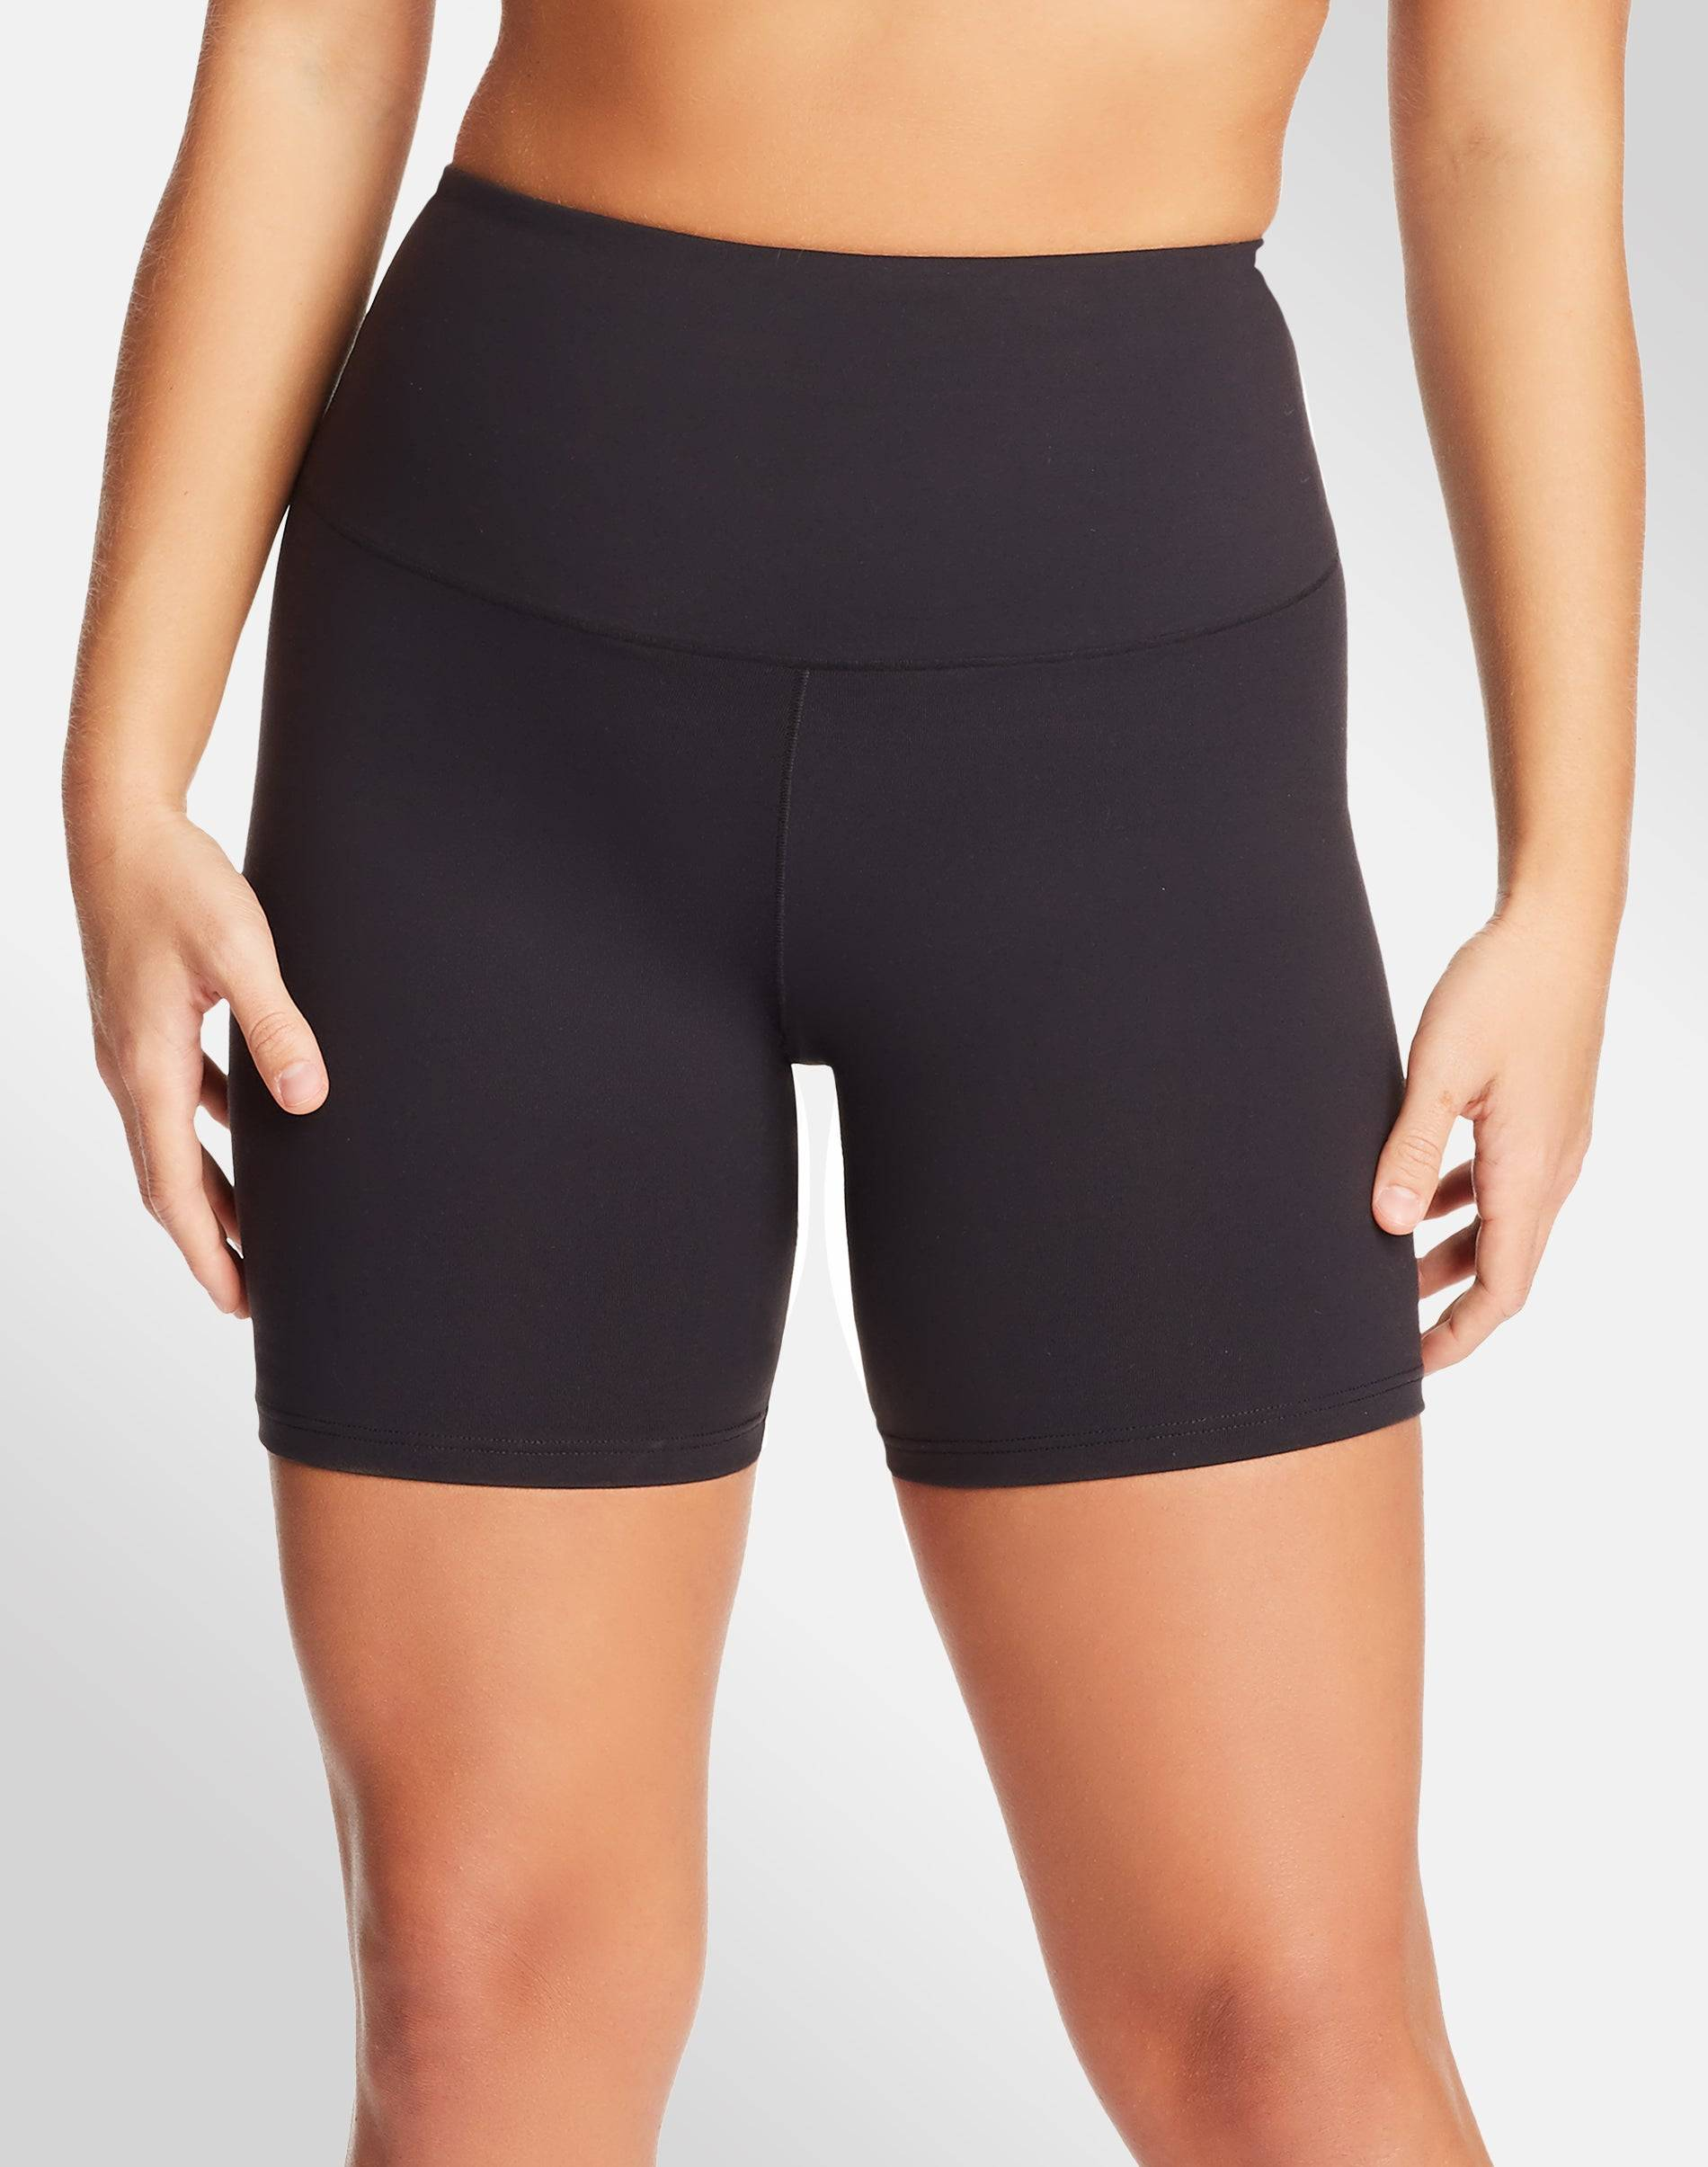 Maidenform Bike Short with Cool Comfort Black L Women's